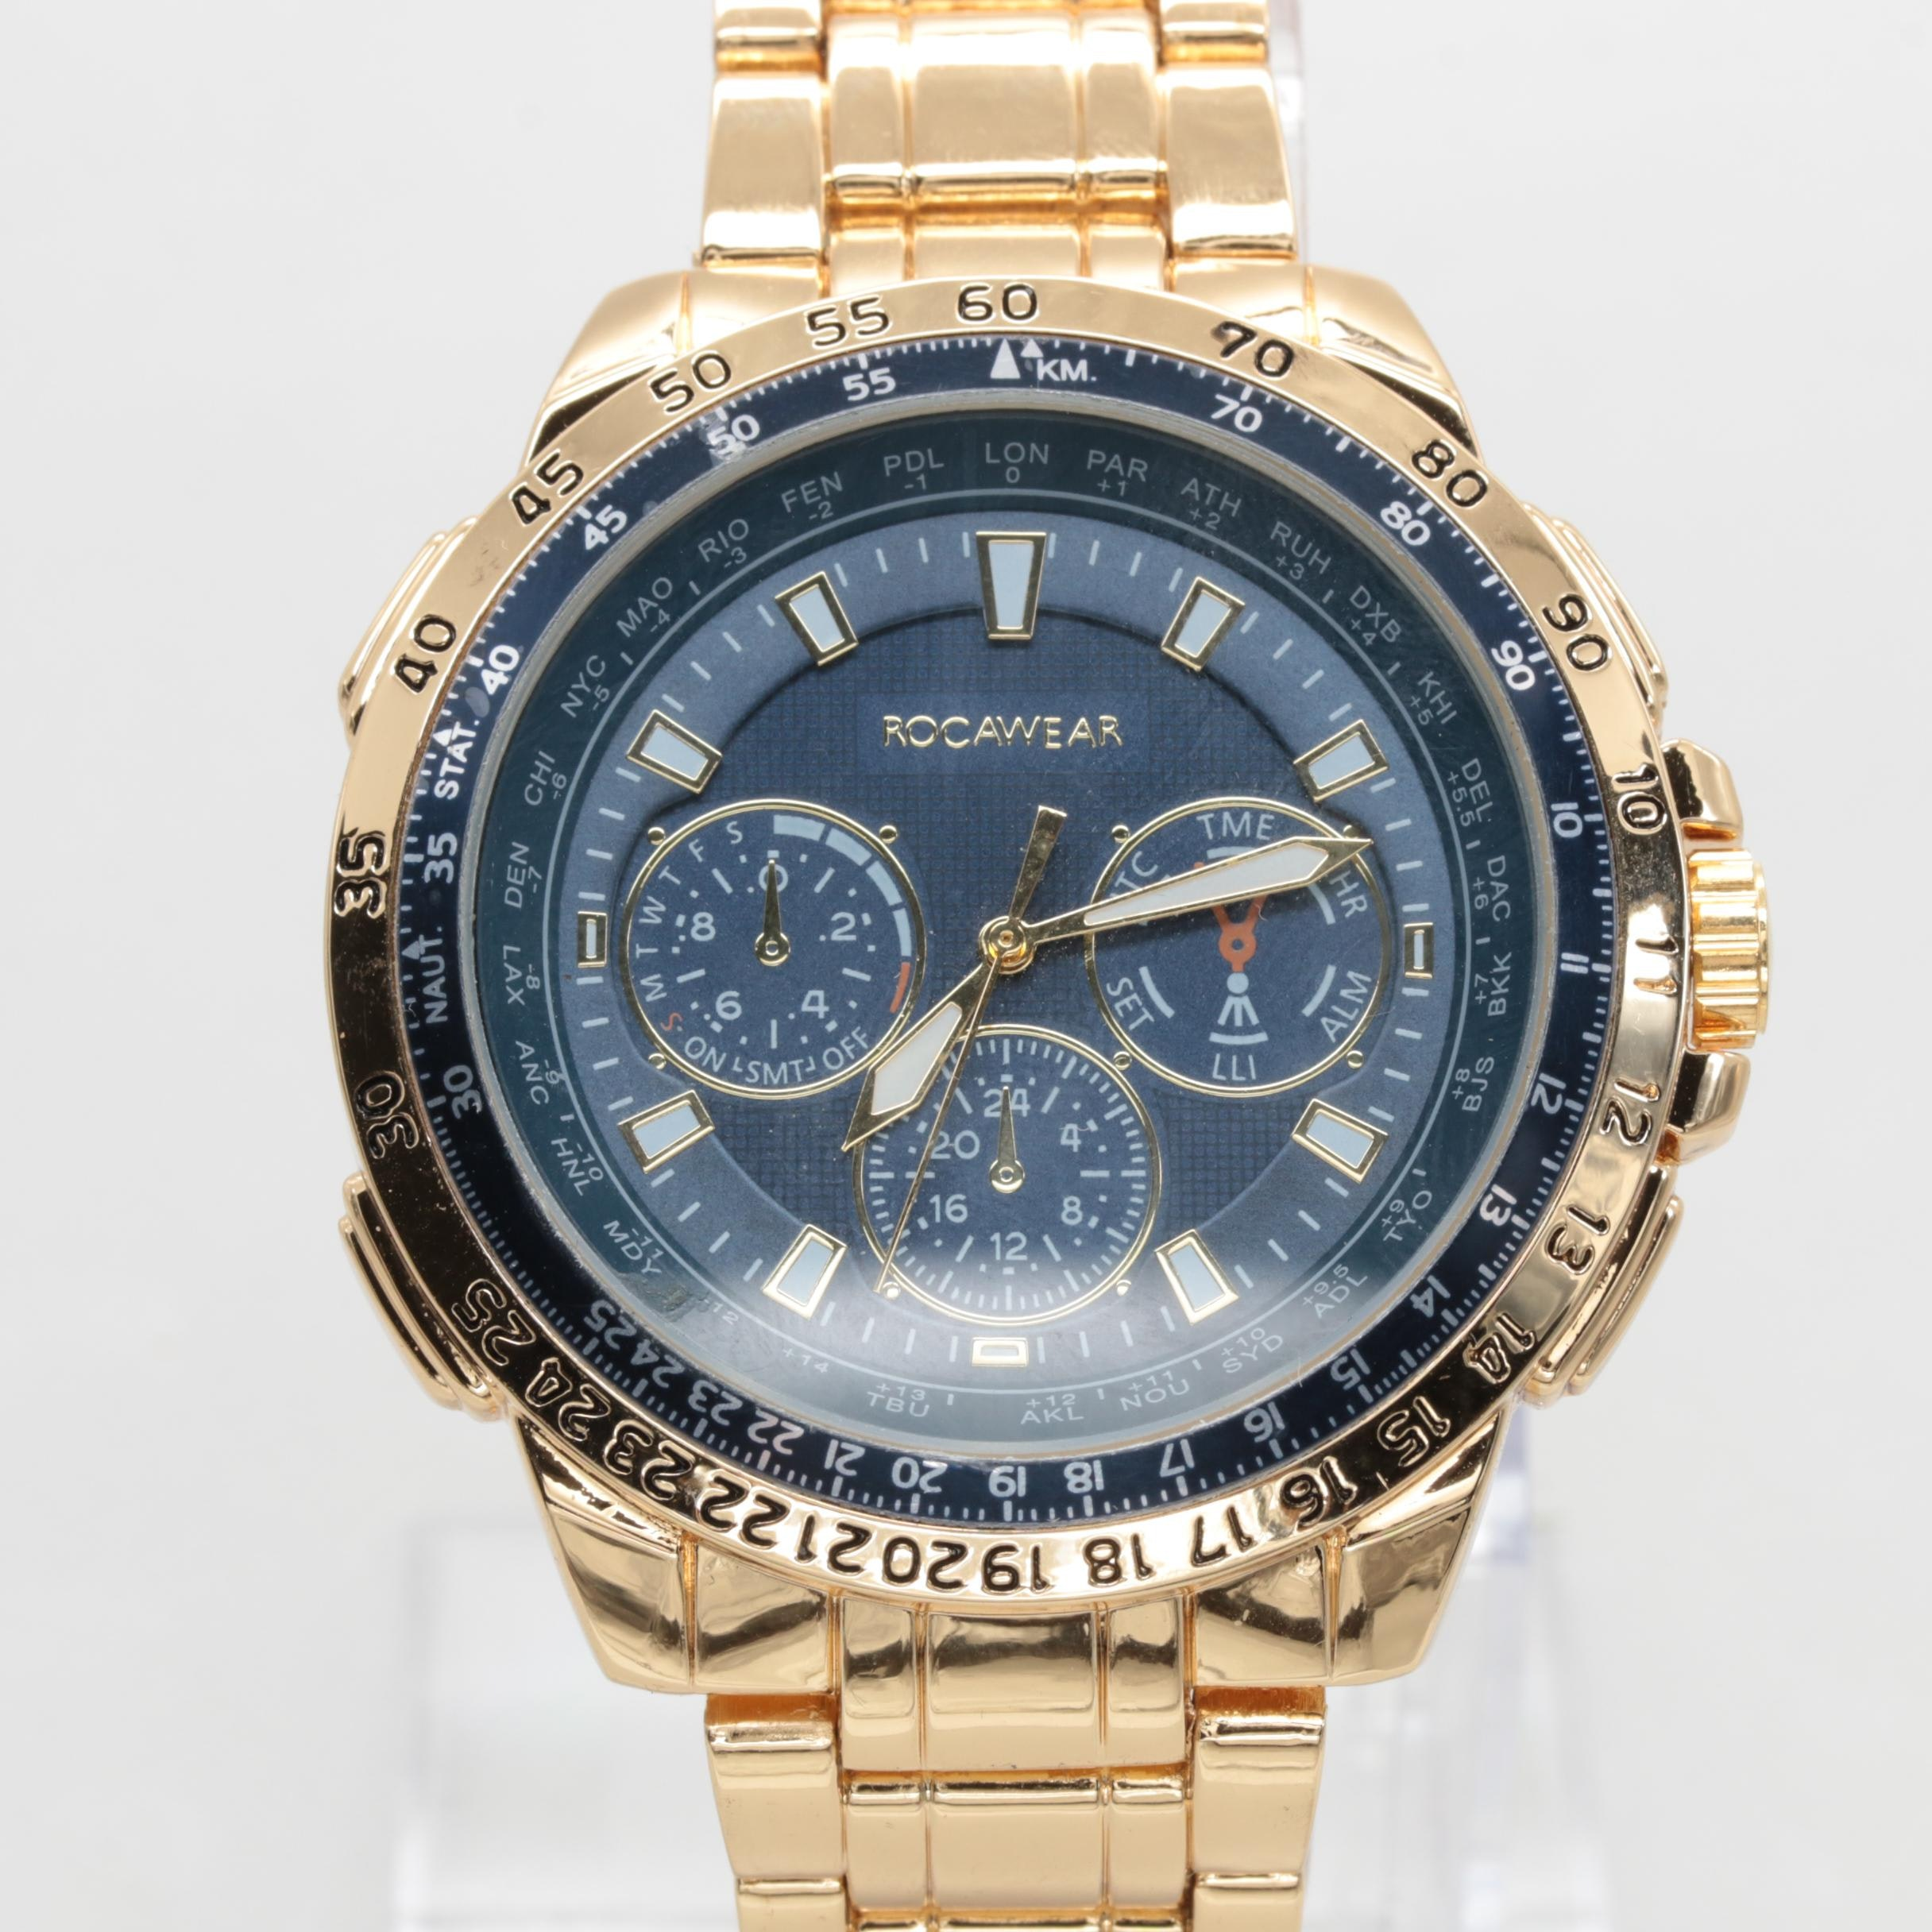 Rocawear Gold Tone Stainless Steel Wristwatch with Tachymeter